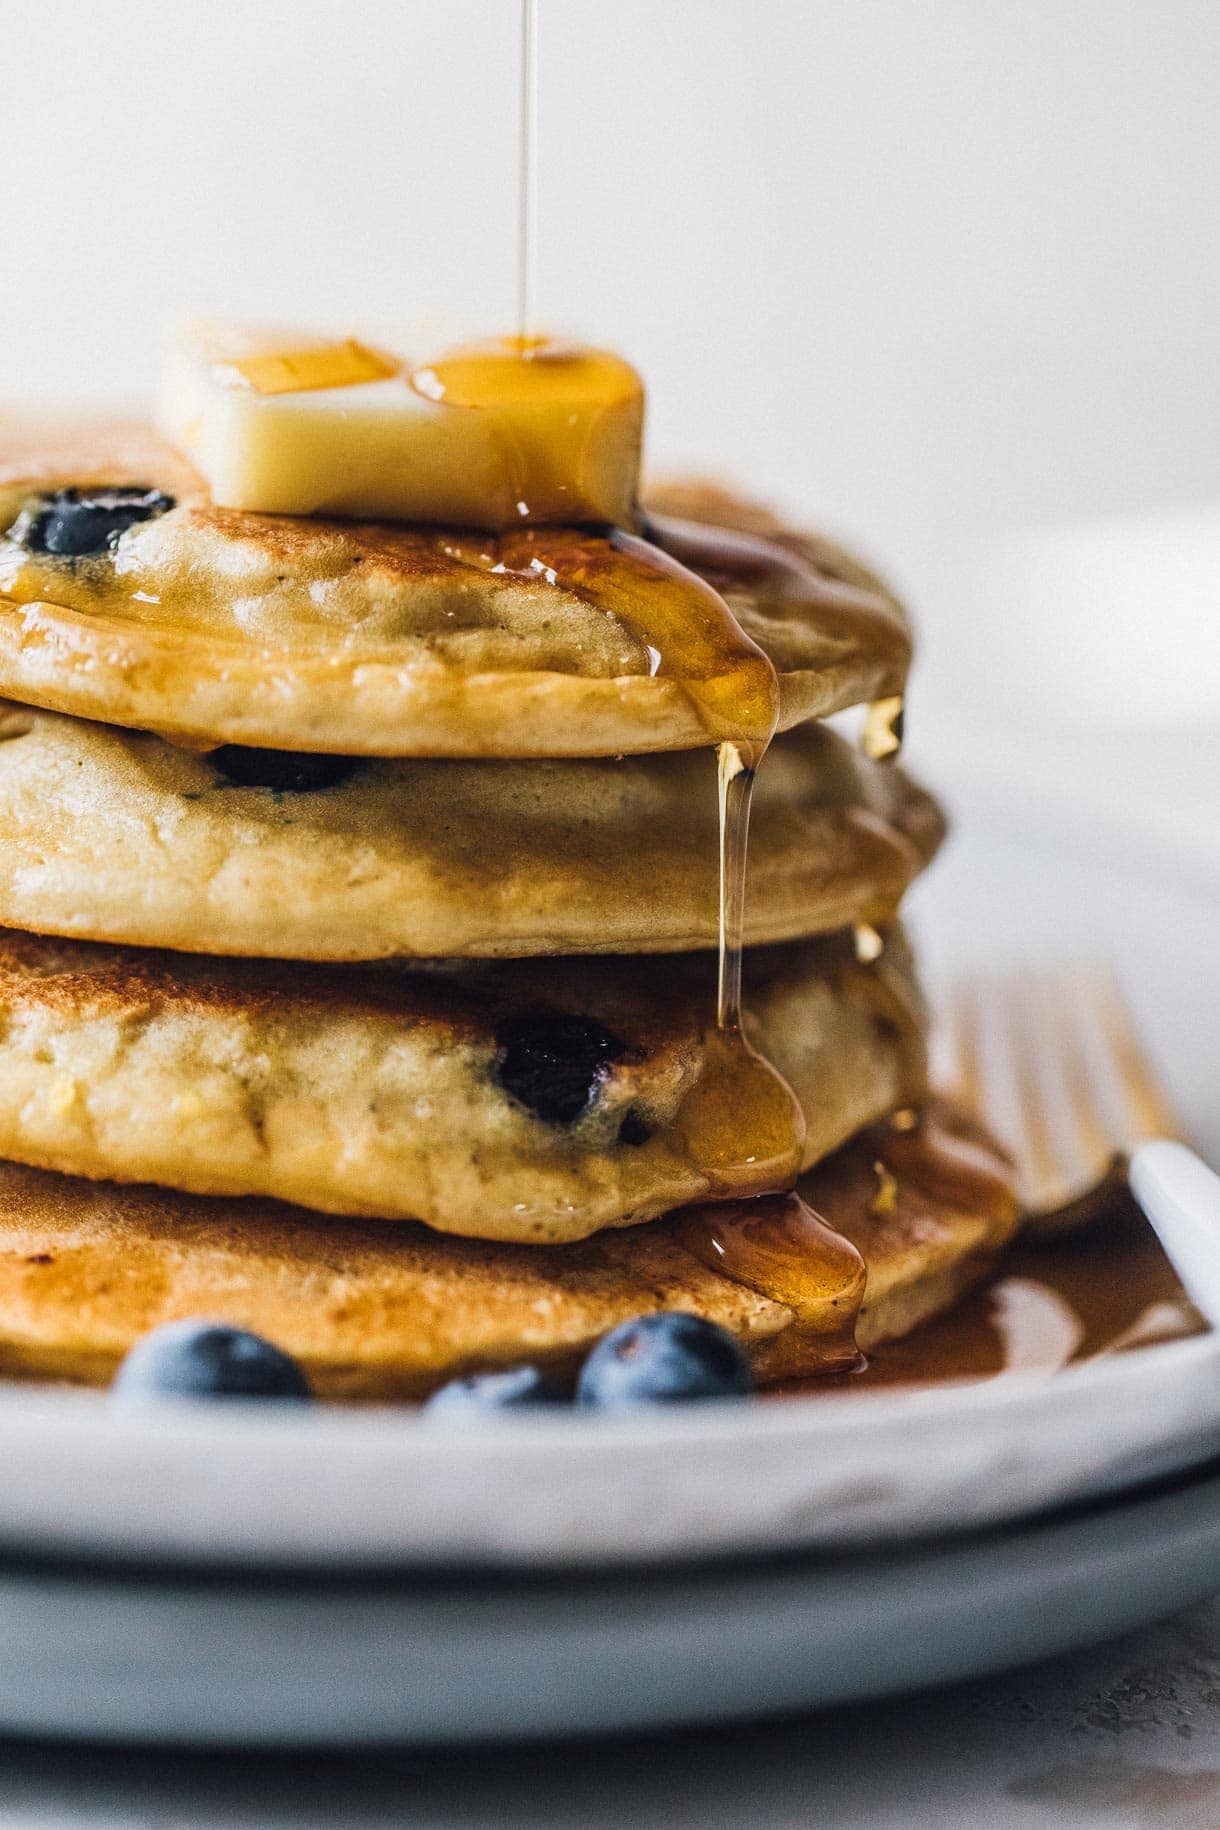 blueberry pancakes dripping with maple syrup